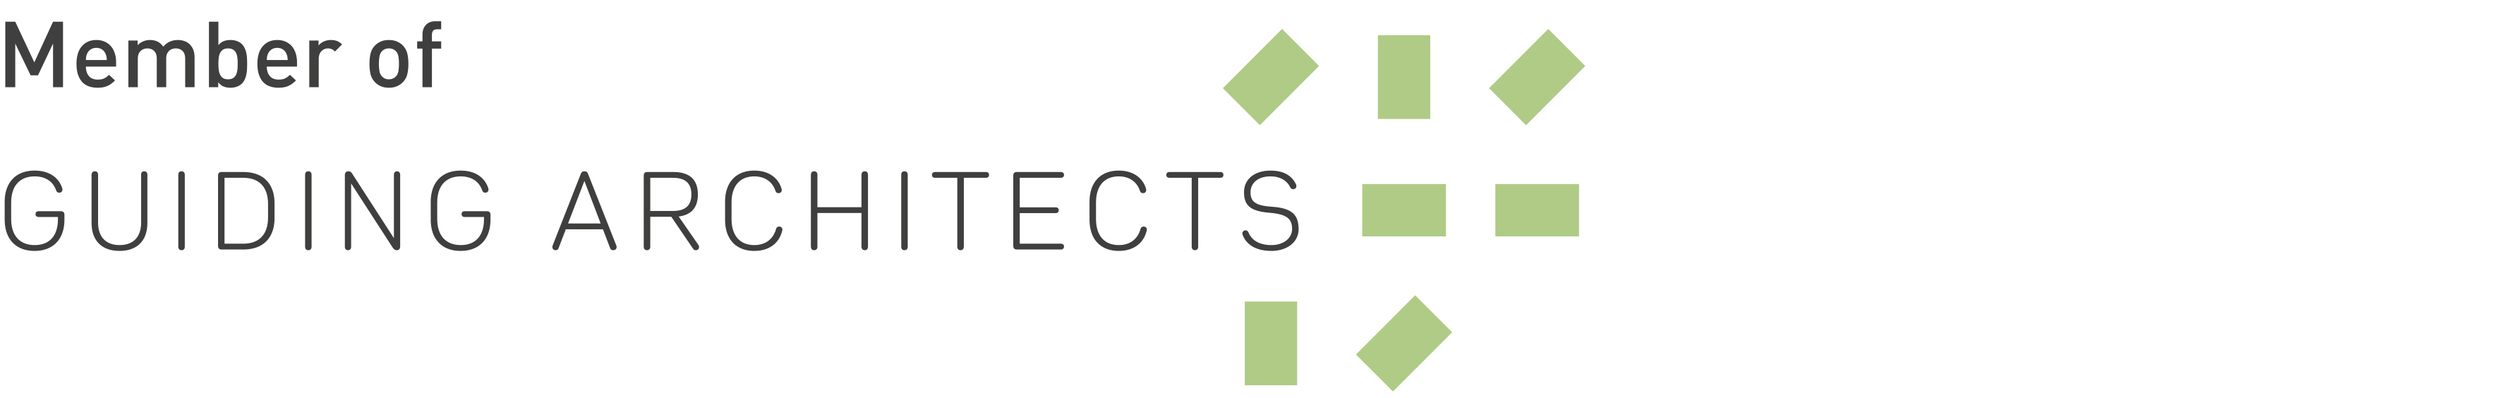 Guiding Architects network logo